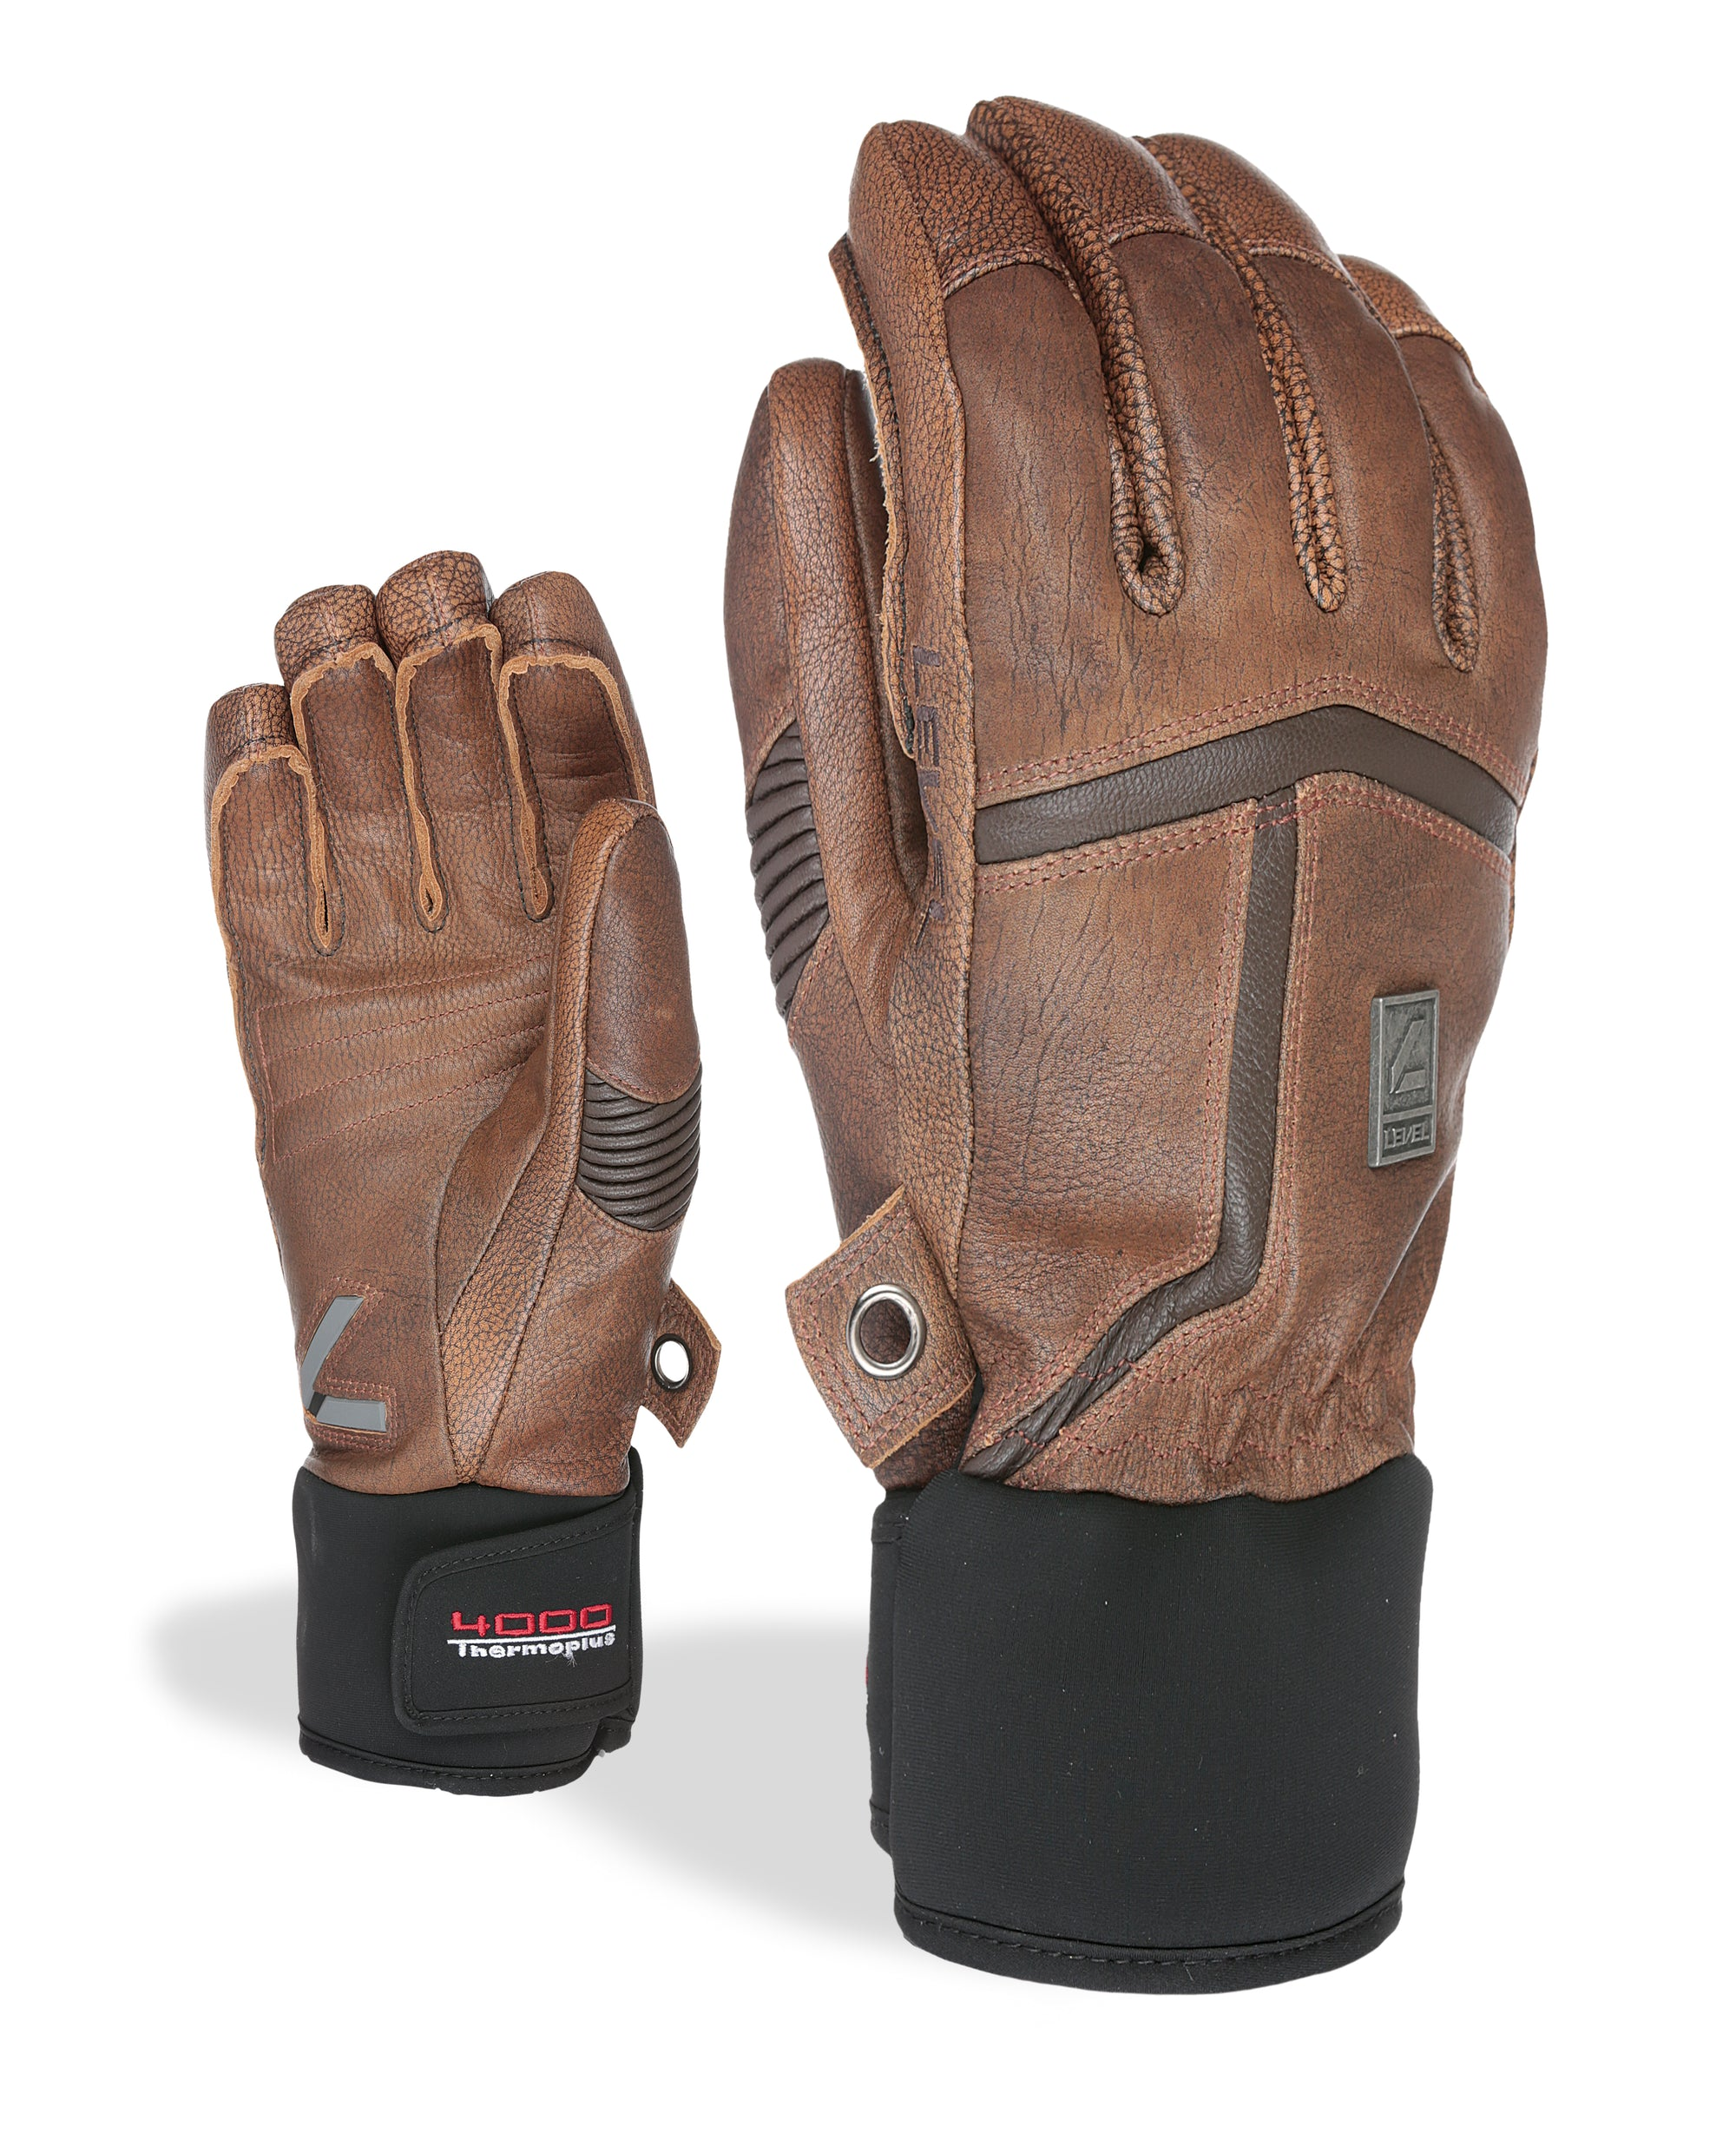 Off Piste Leather Ski Gloves